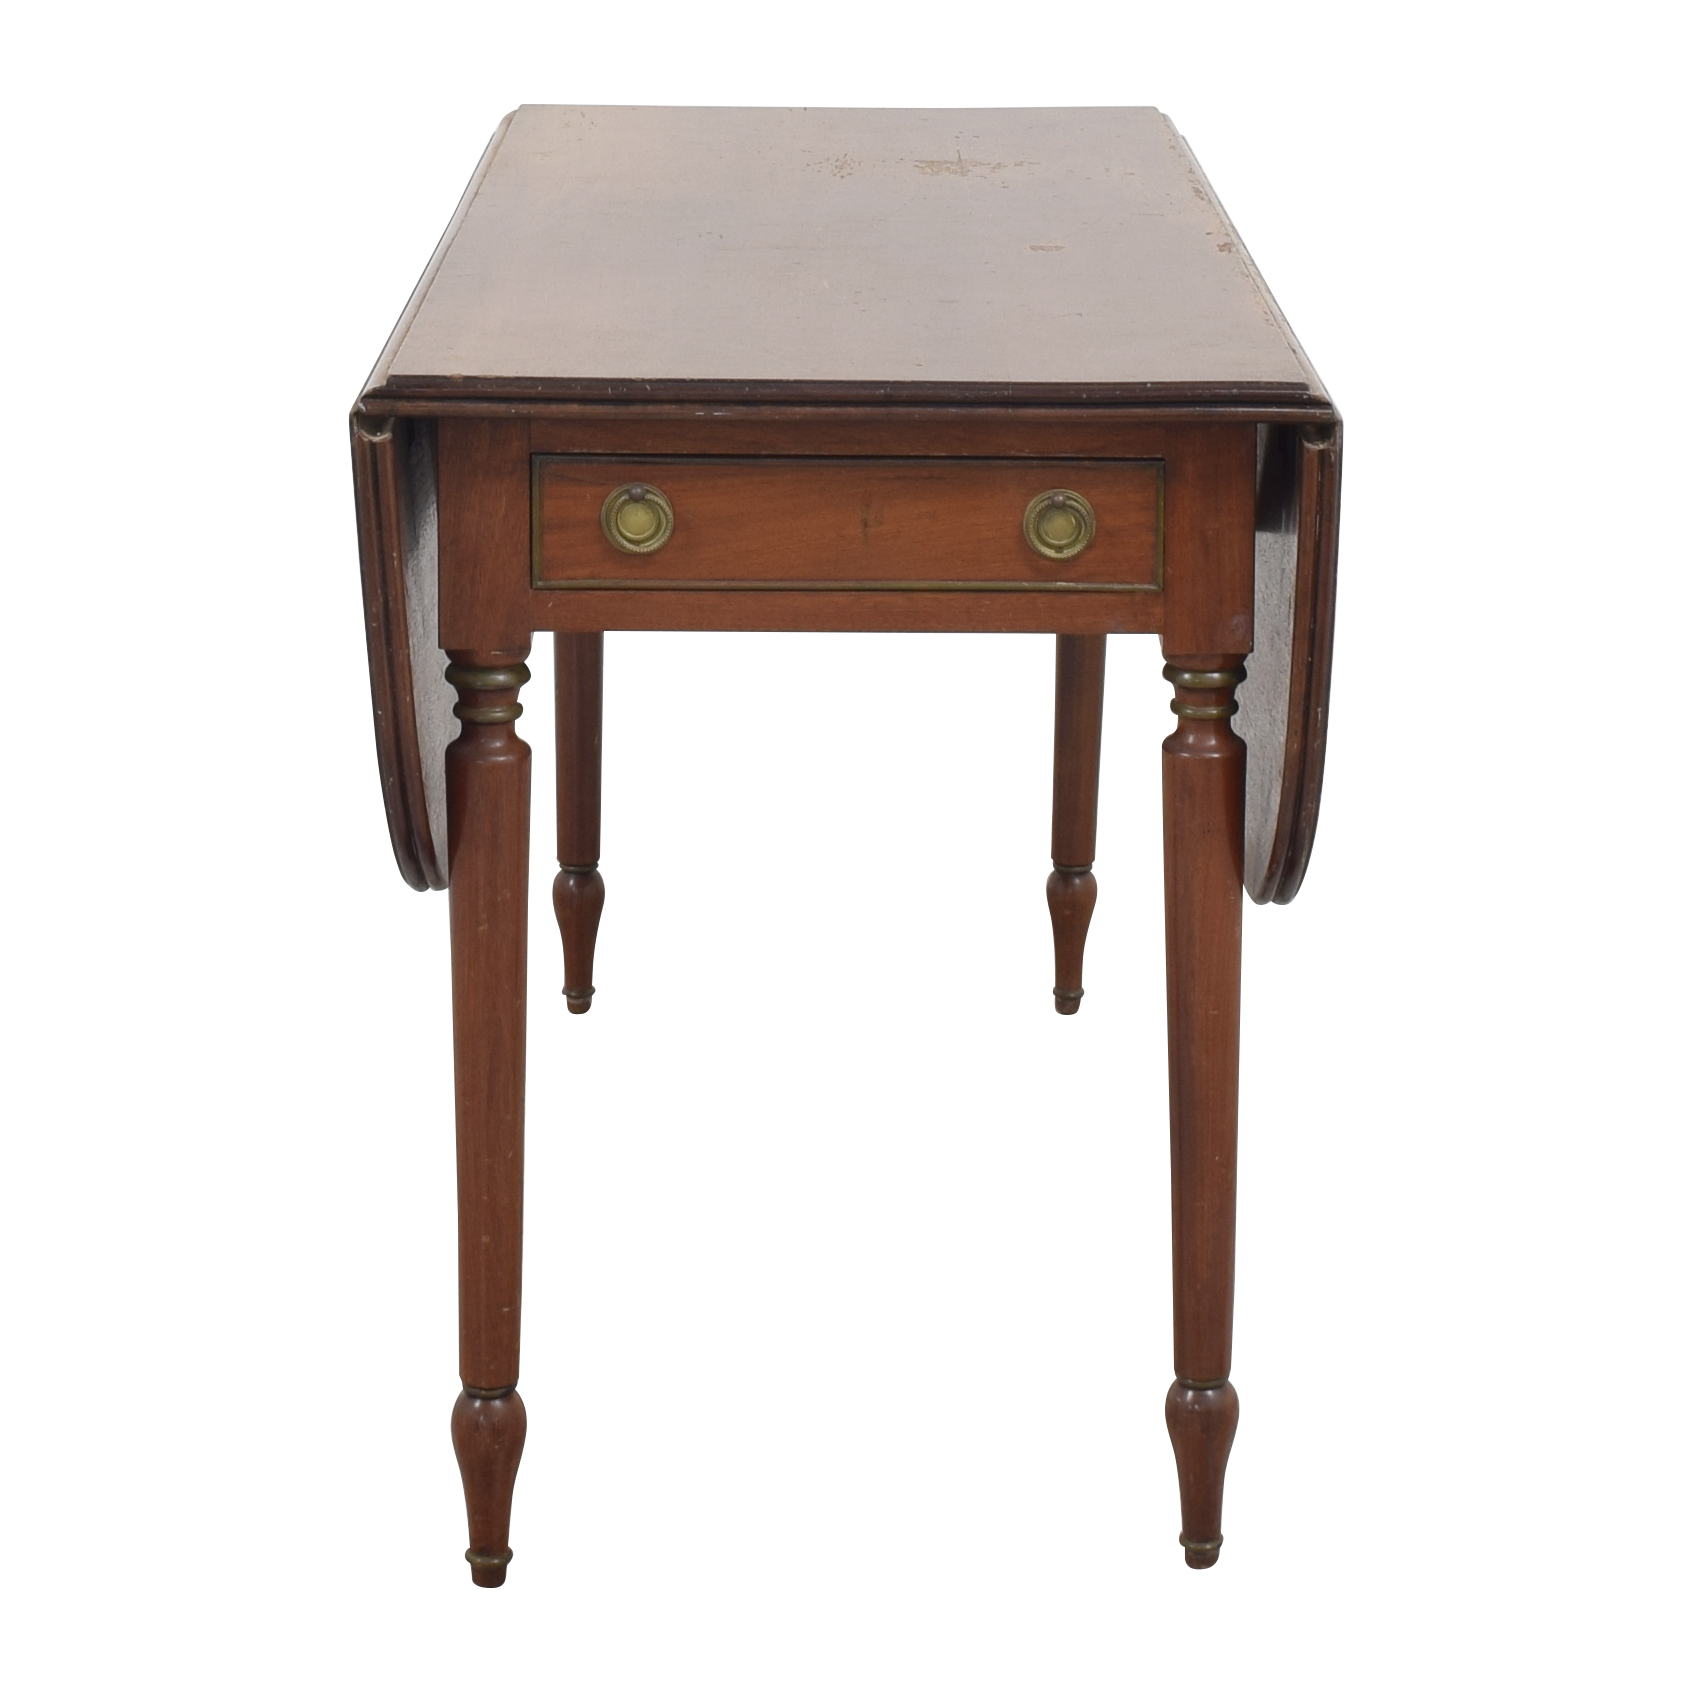 buy American Federal Drop Leaf Console Table A-America Wood Furniture Utility Tables